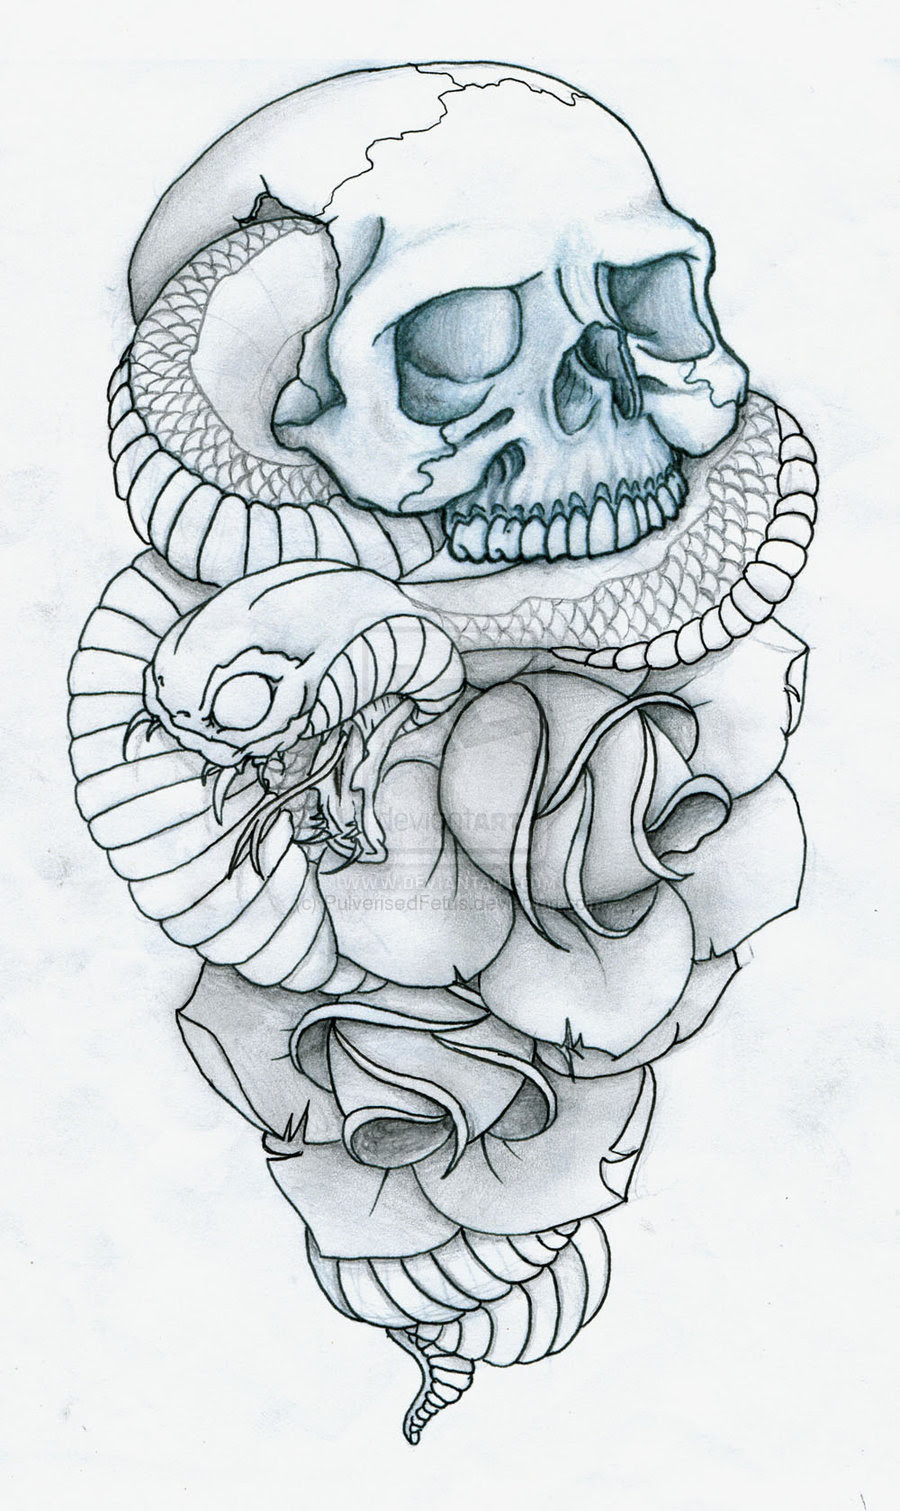 Skull Snake And Roses Tattoo Designs Photo 4 2017 Real Photo